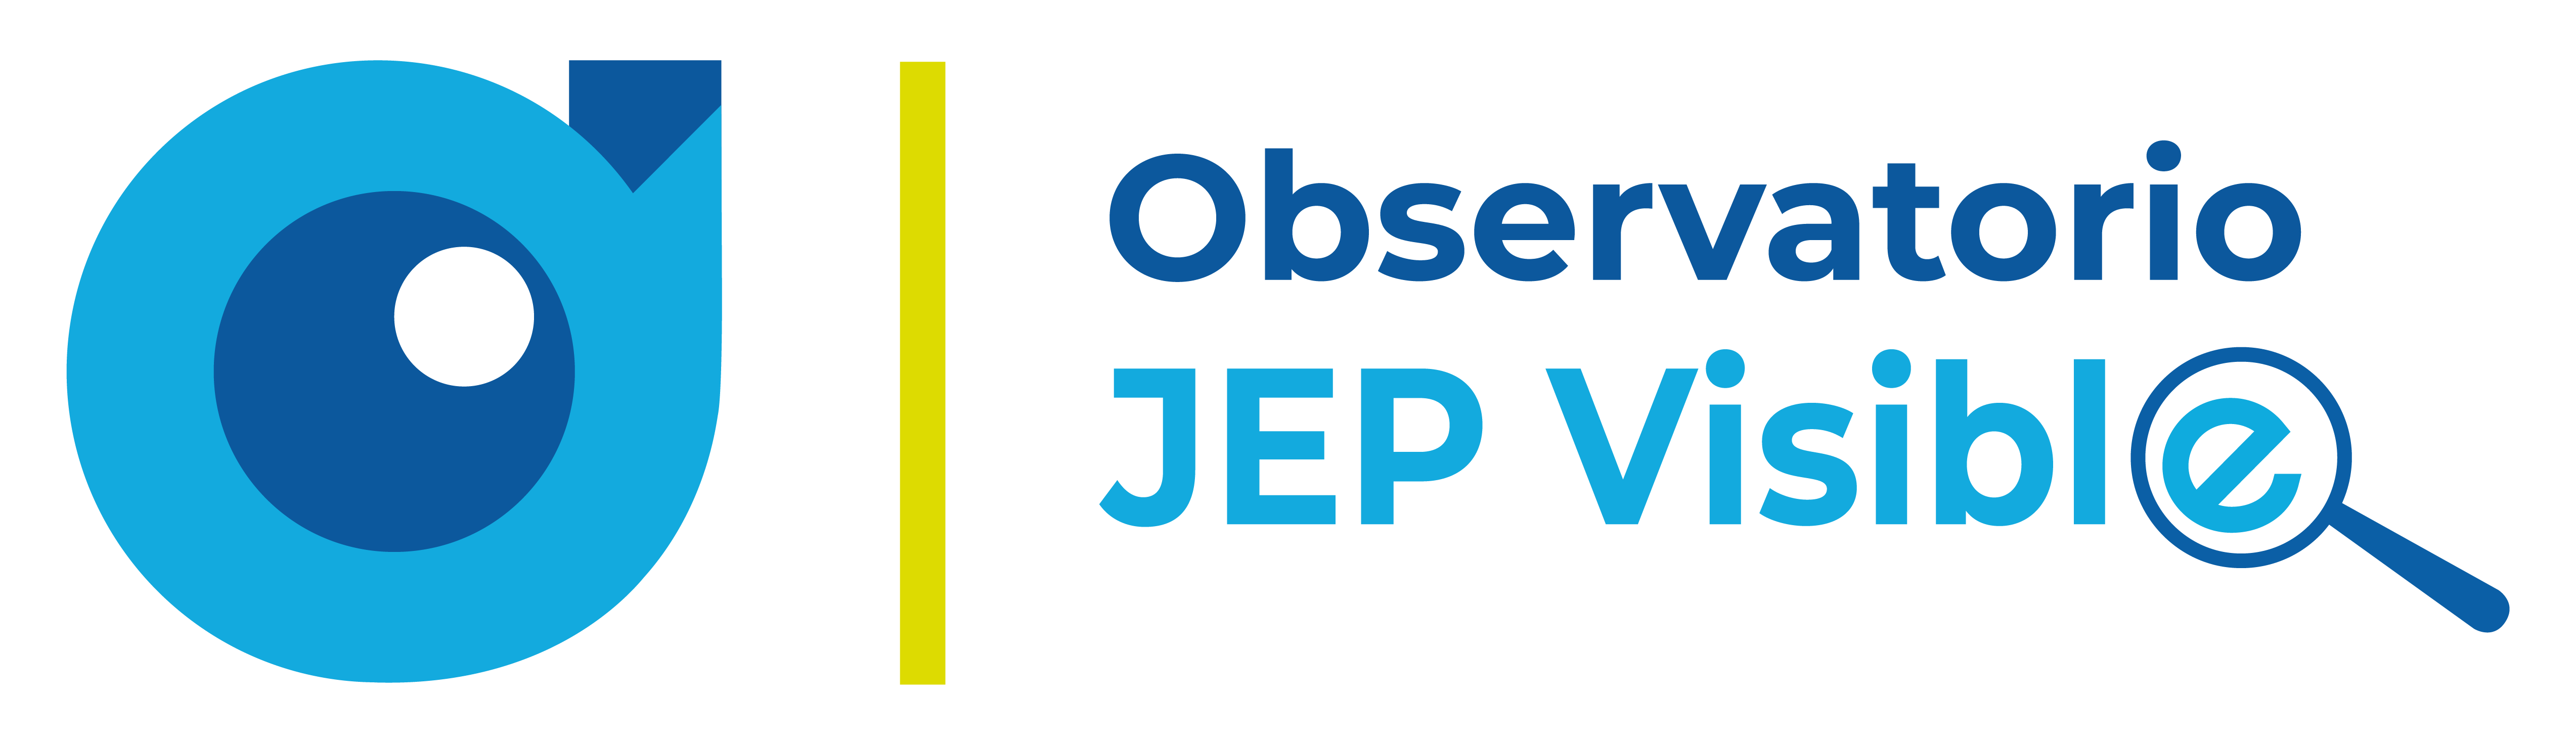 Jep Visible Observatorio